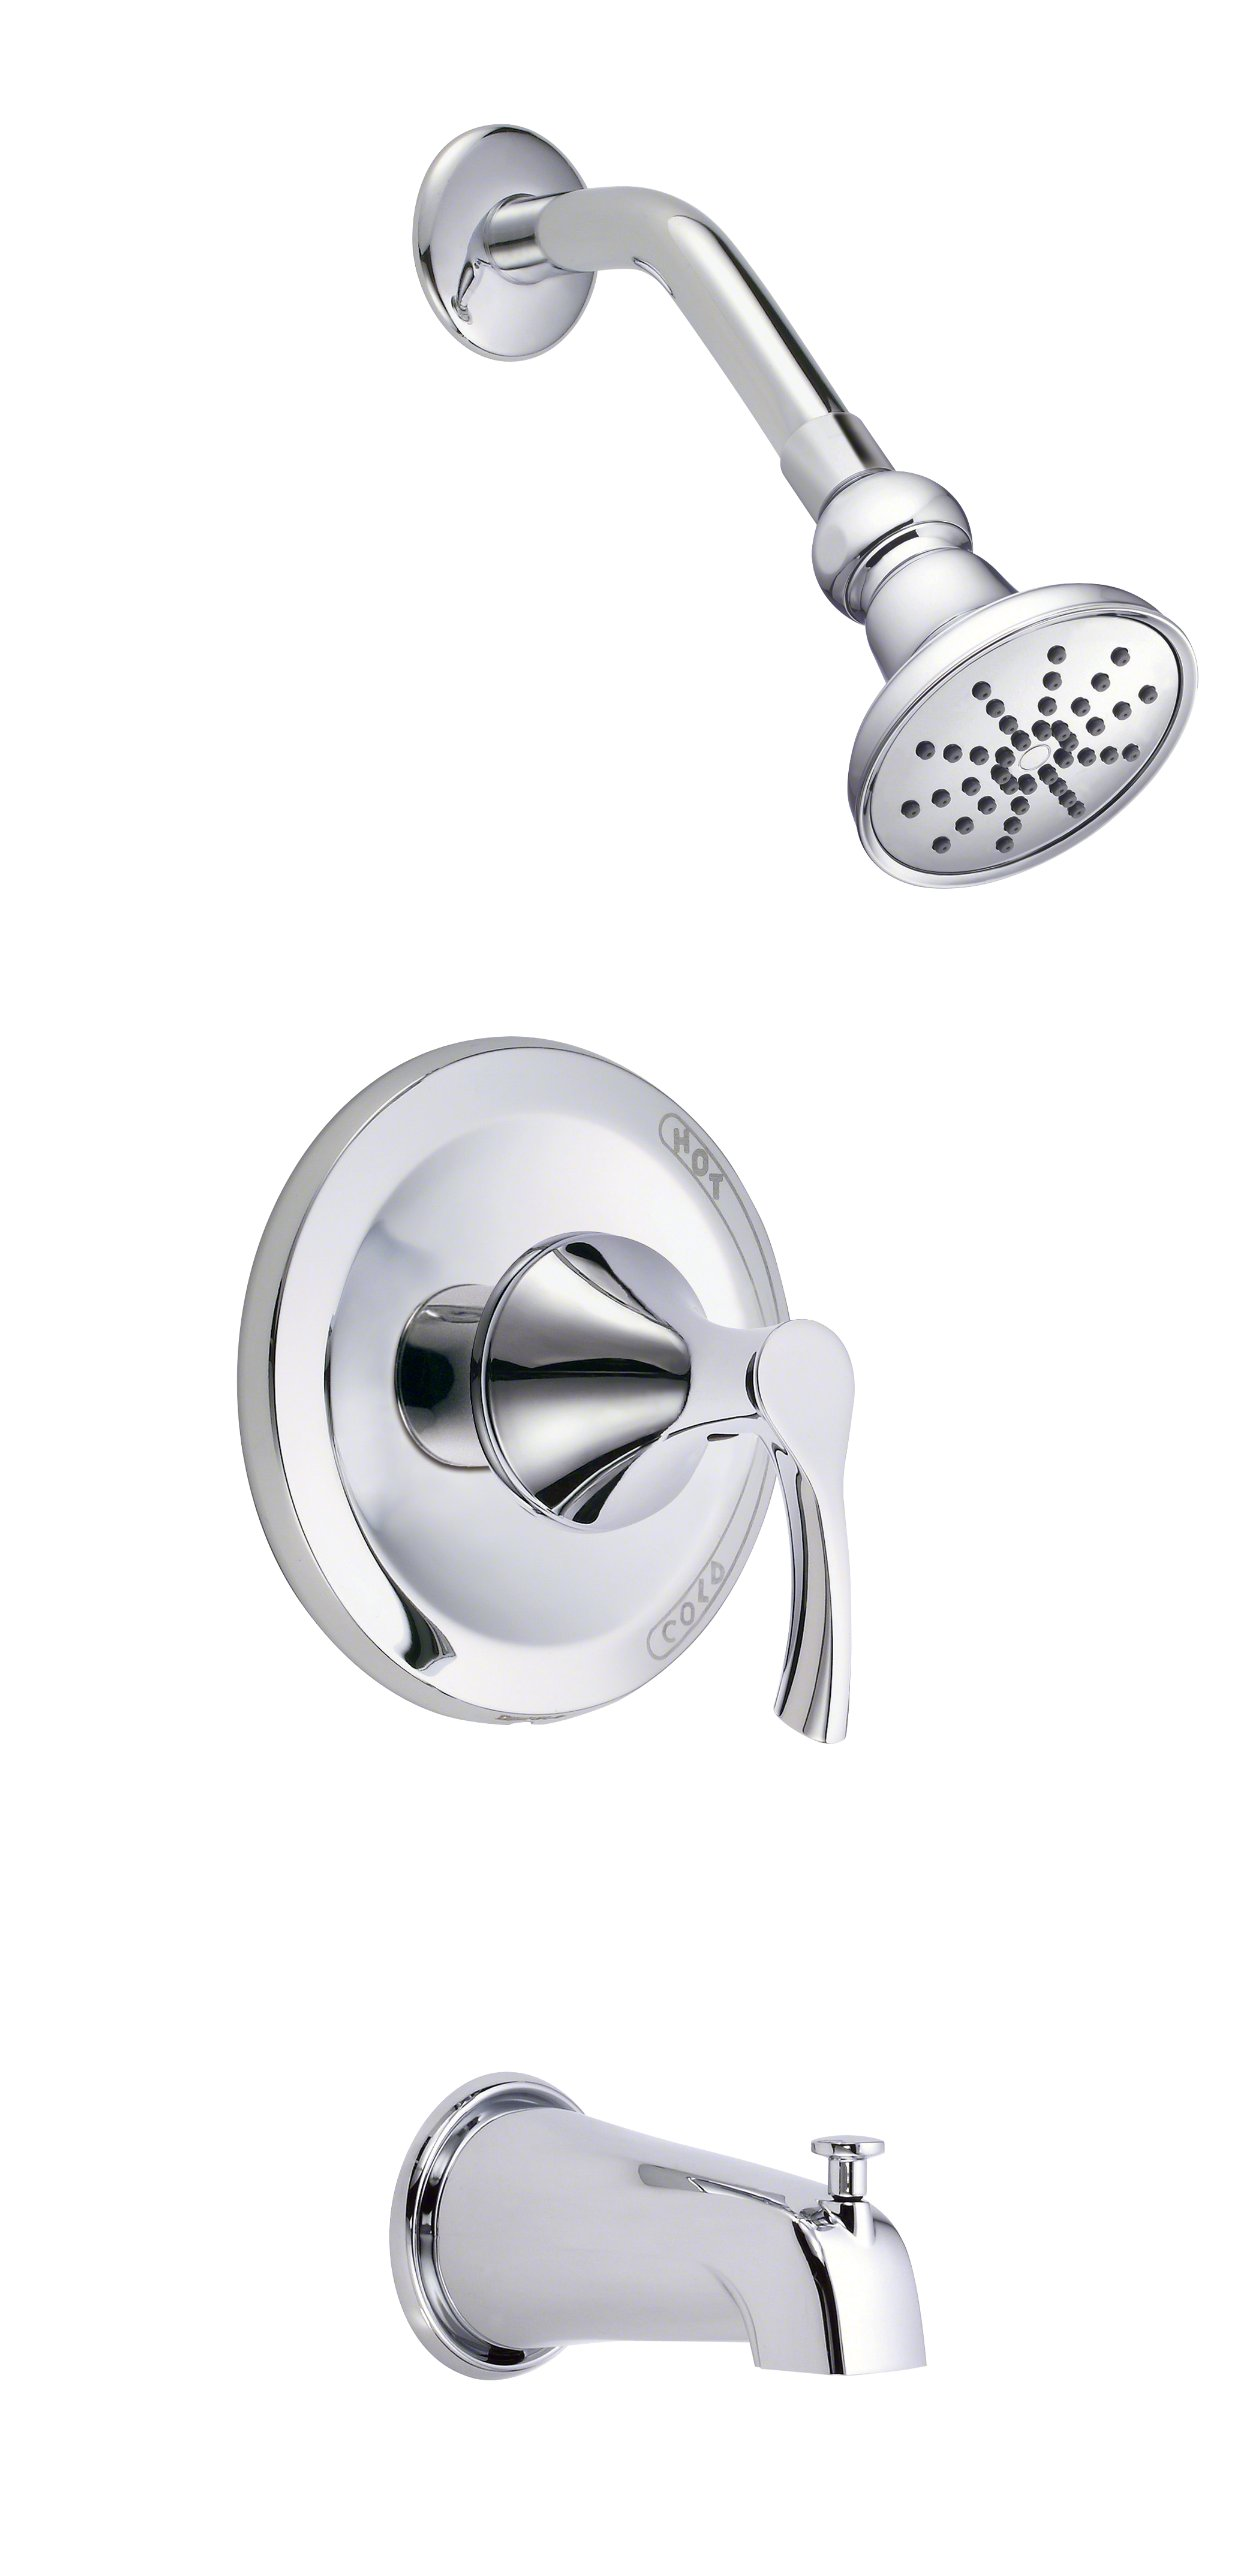 Danze D503022T Antioch Single Handle Tub and Shower Trim Kit, 1.5 GPM, Valve Not Included, Chrome by Danze